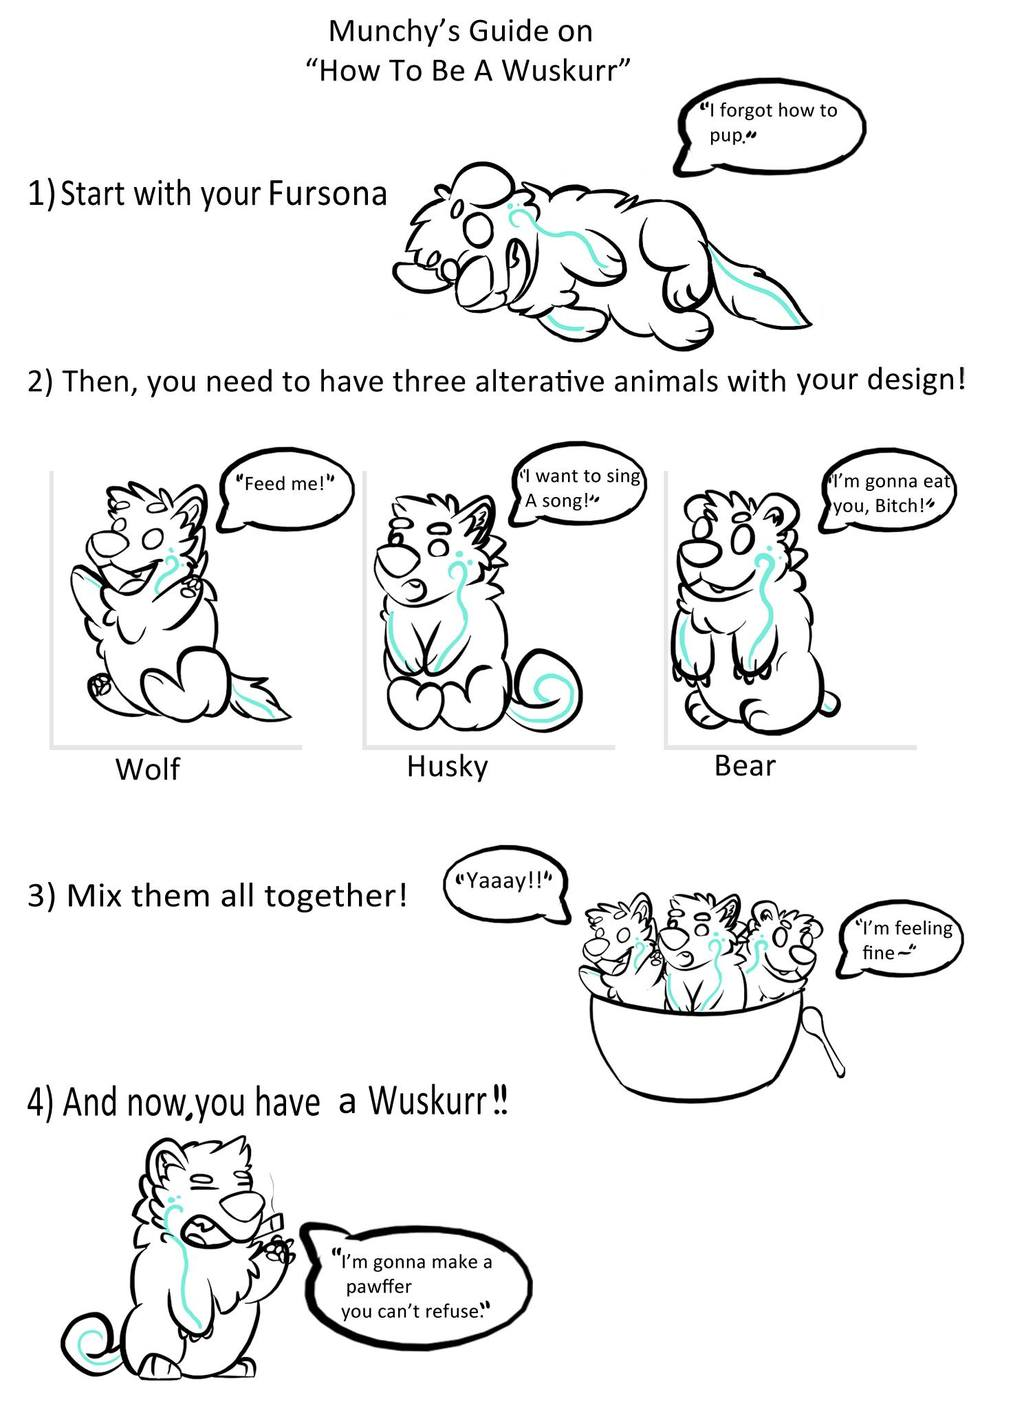 'How To Be A Wuskurr'